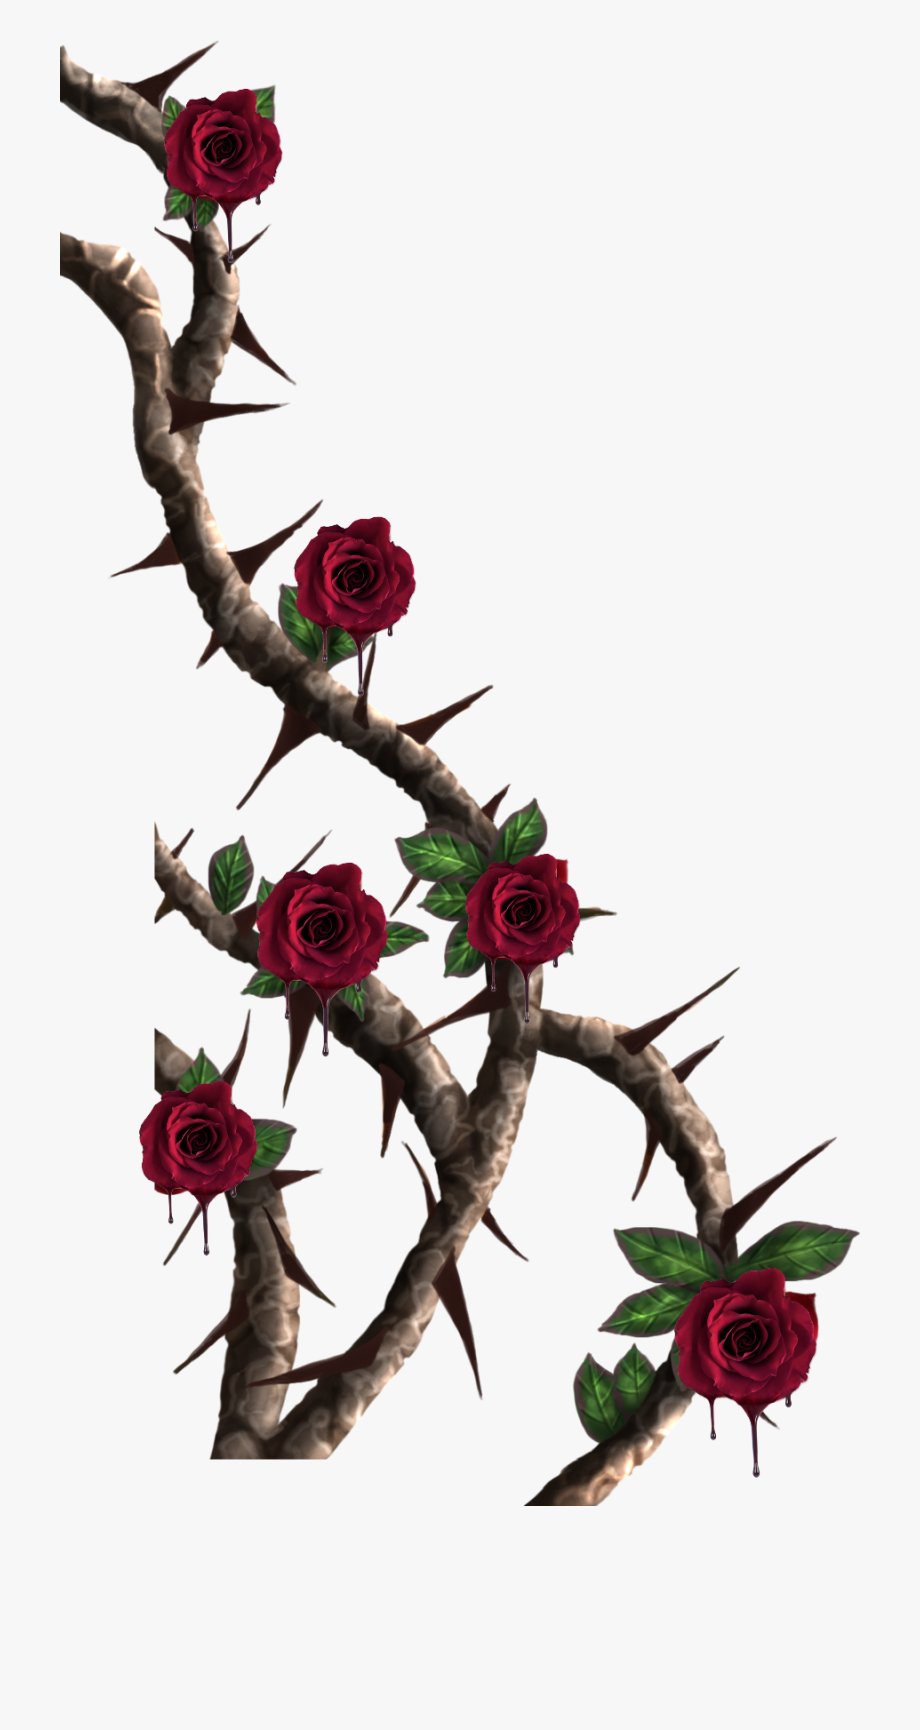 vines #roses #rose #vine #red #thorns #melting #drip.